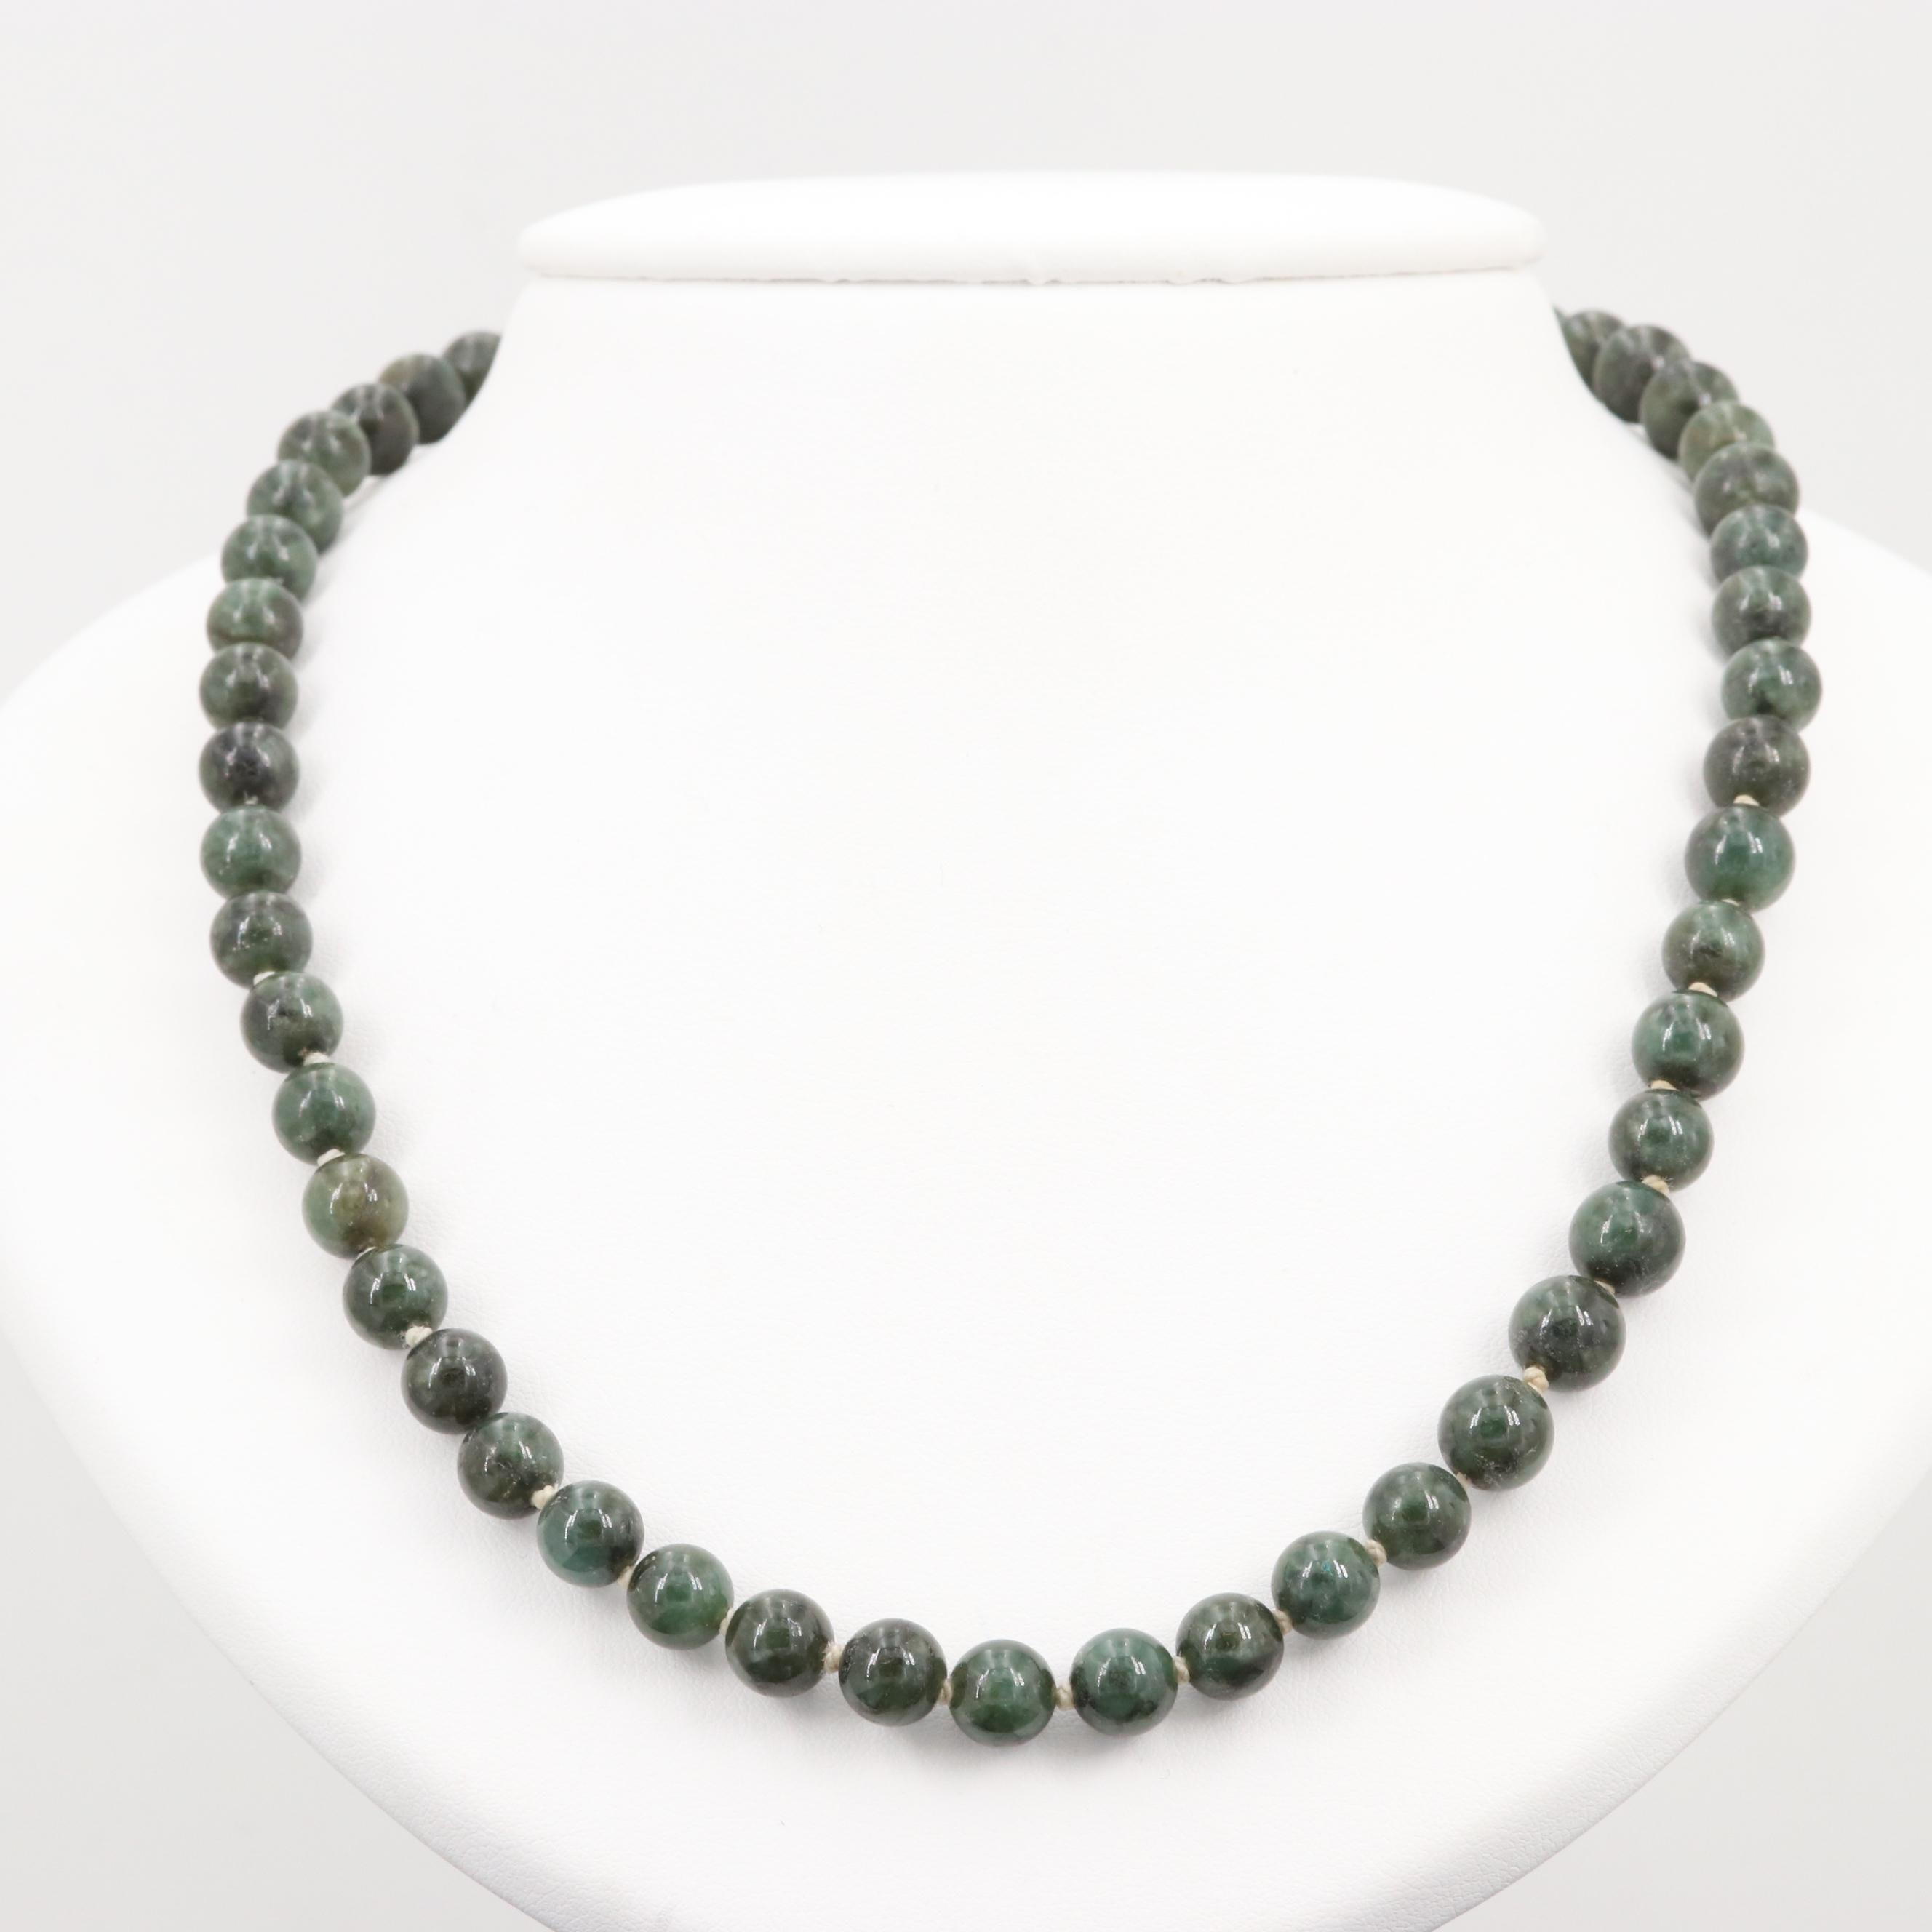 10K Yellow Gold Nephrite Individually Knotted Bead Necklace